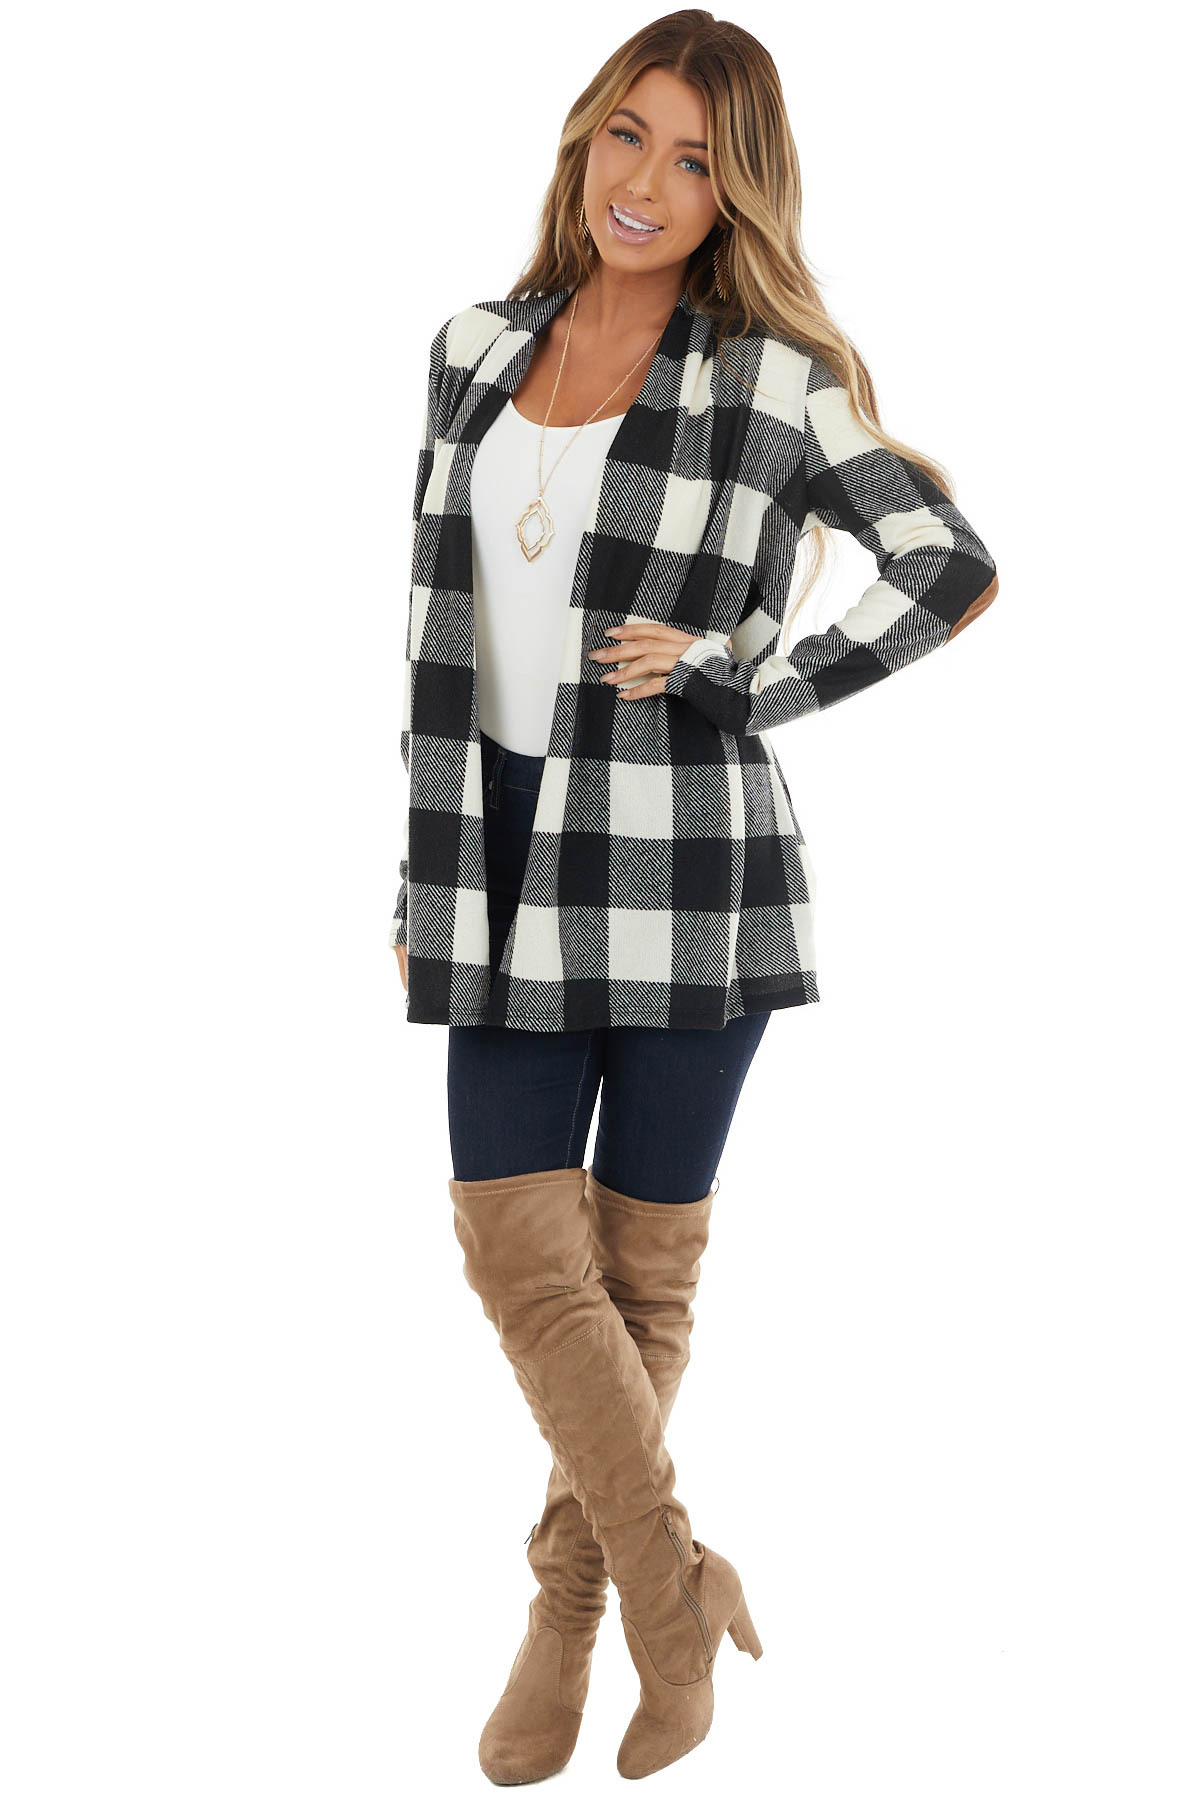 Ivory and Black Buffalo Plaid Cardigan with Elbow Patches